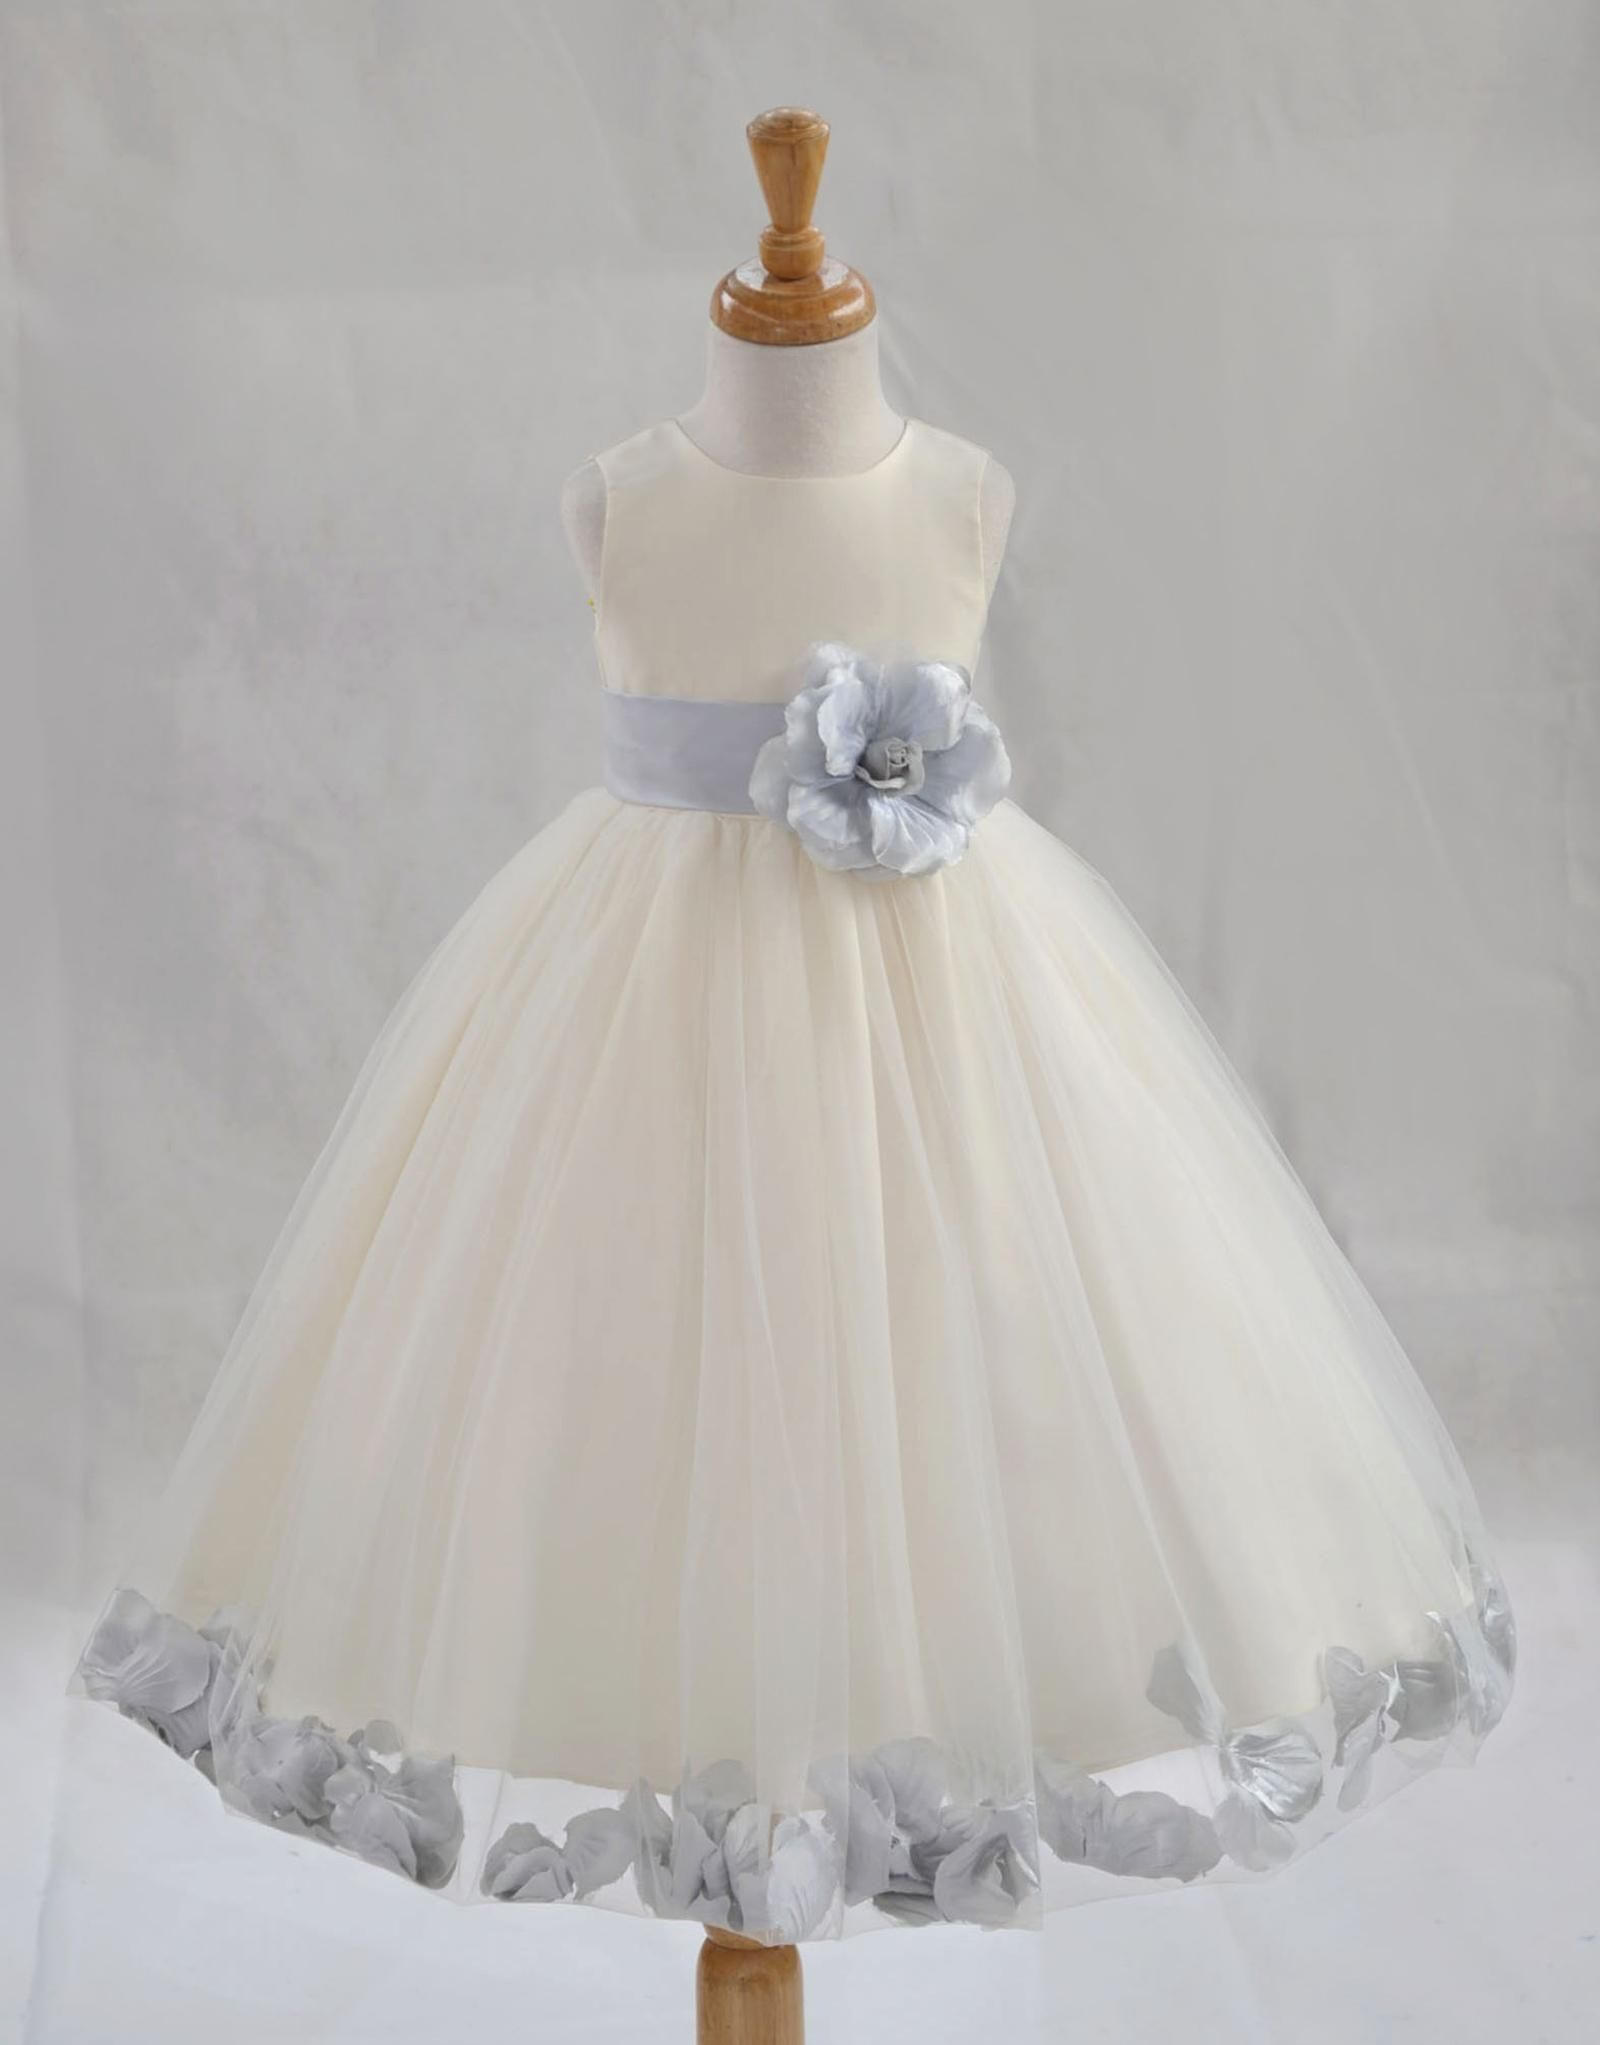 Flower Girl Dress Wedding Formal Pageant Recital Graduation Bridesmaid Communion